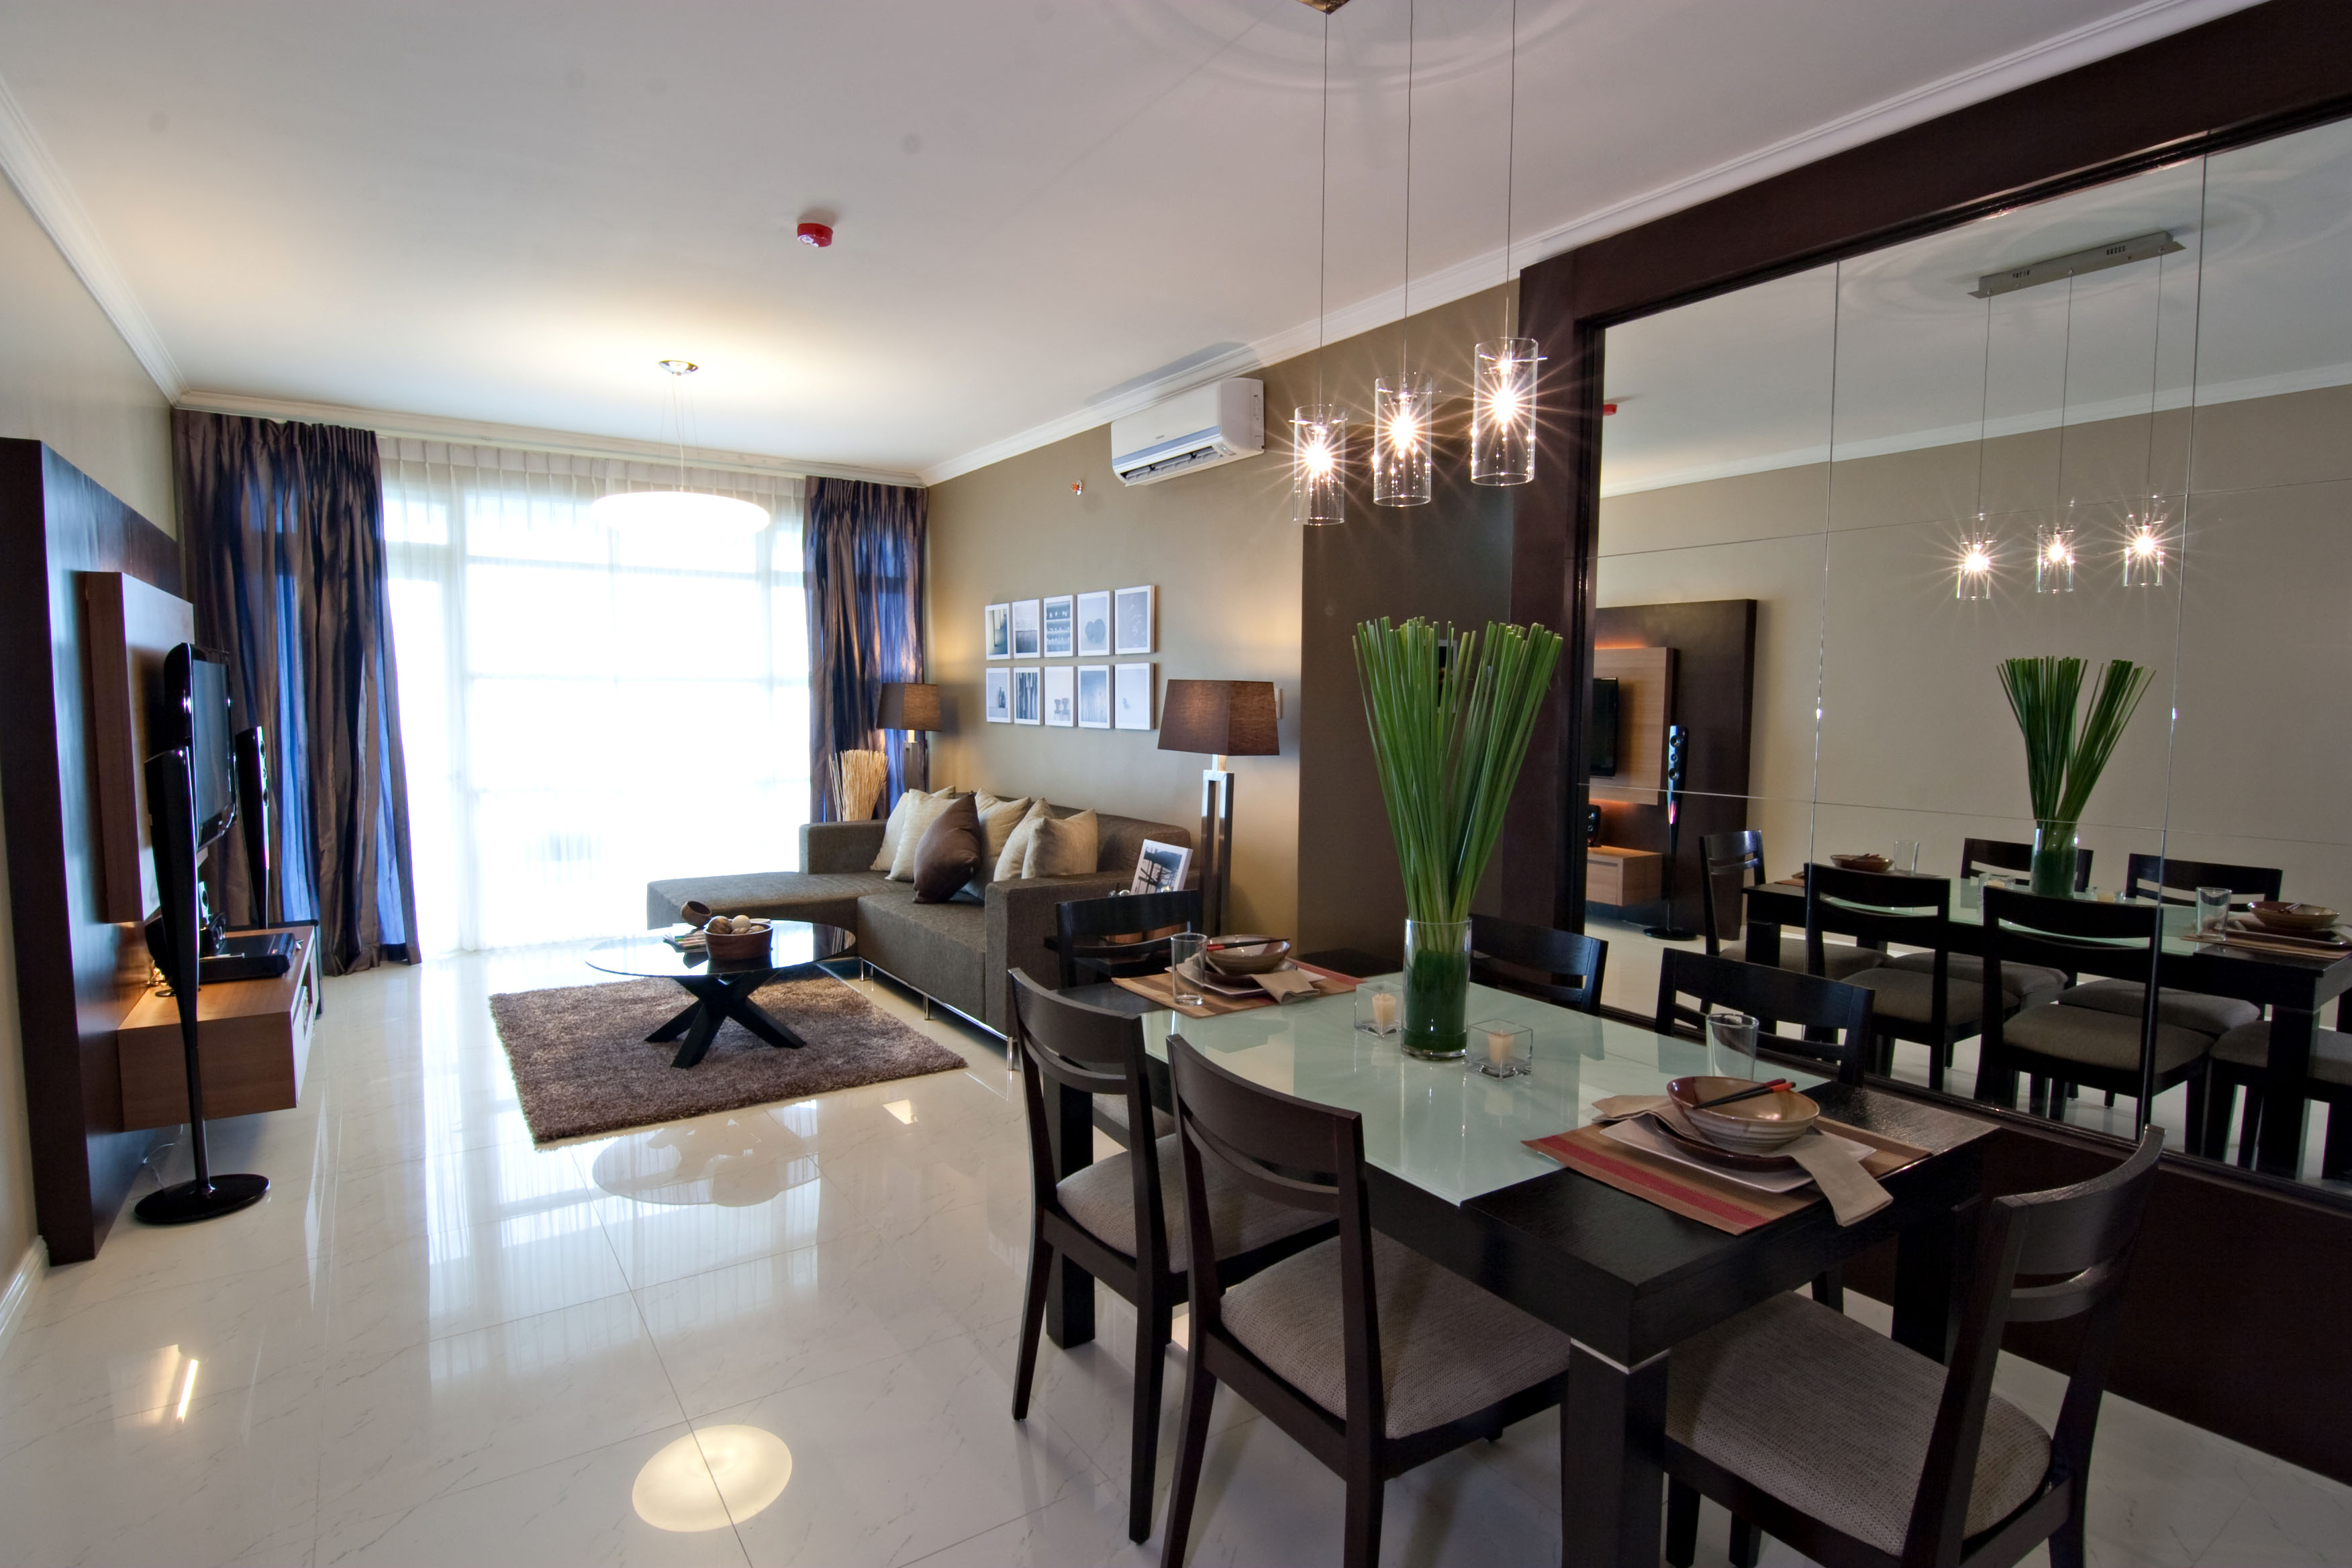 Citylights garden condominium by adrian del monte at Condo kitchen design philippines